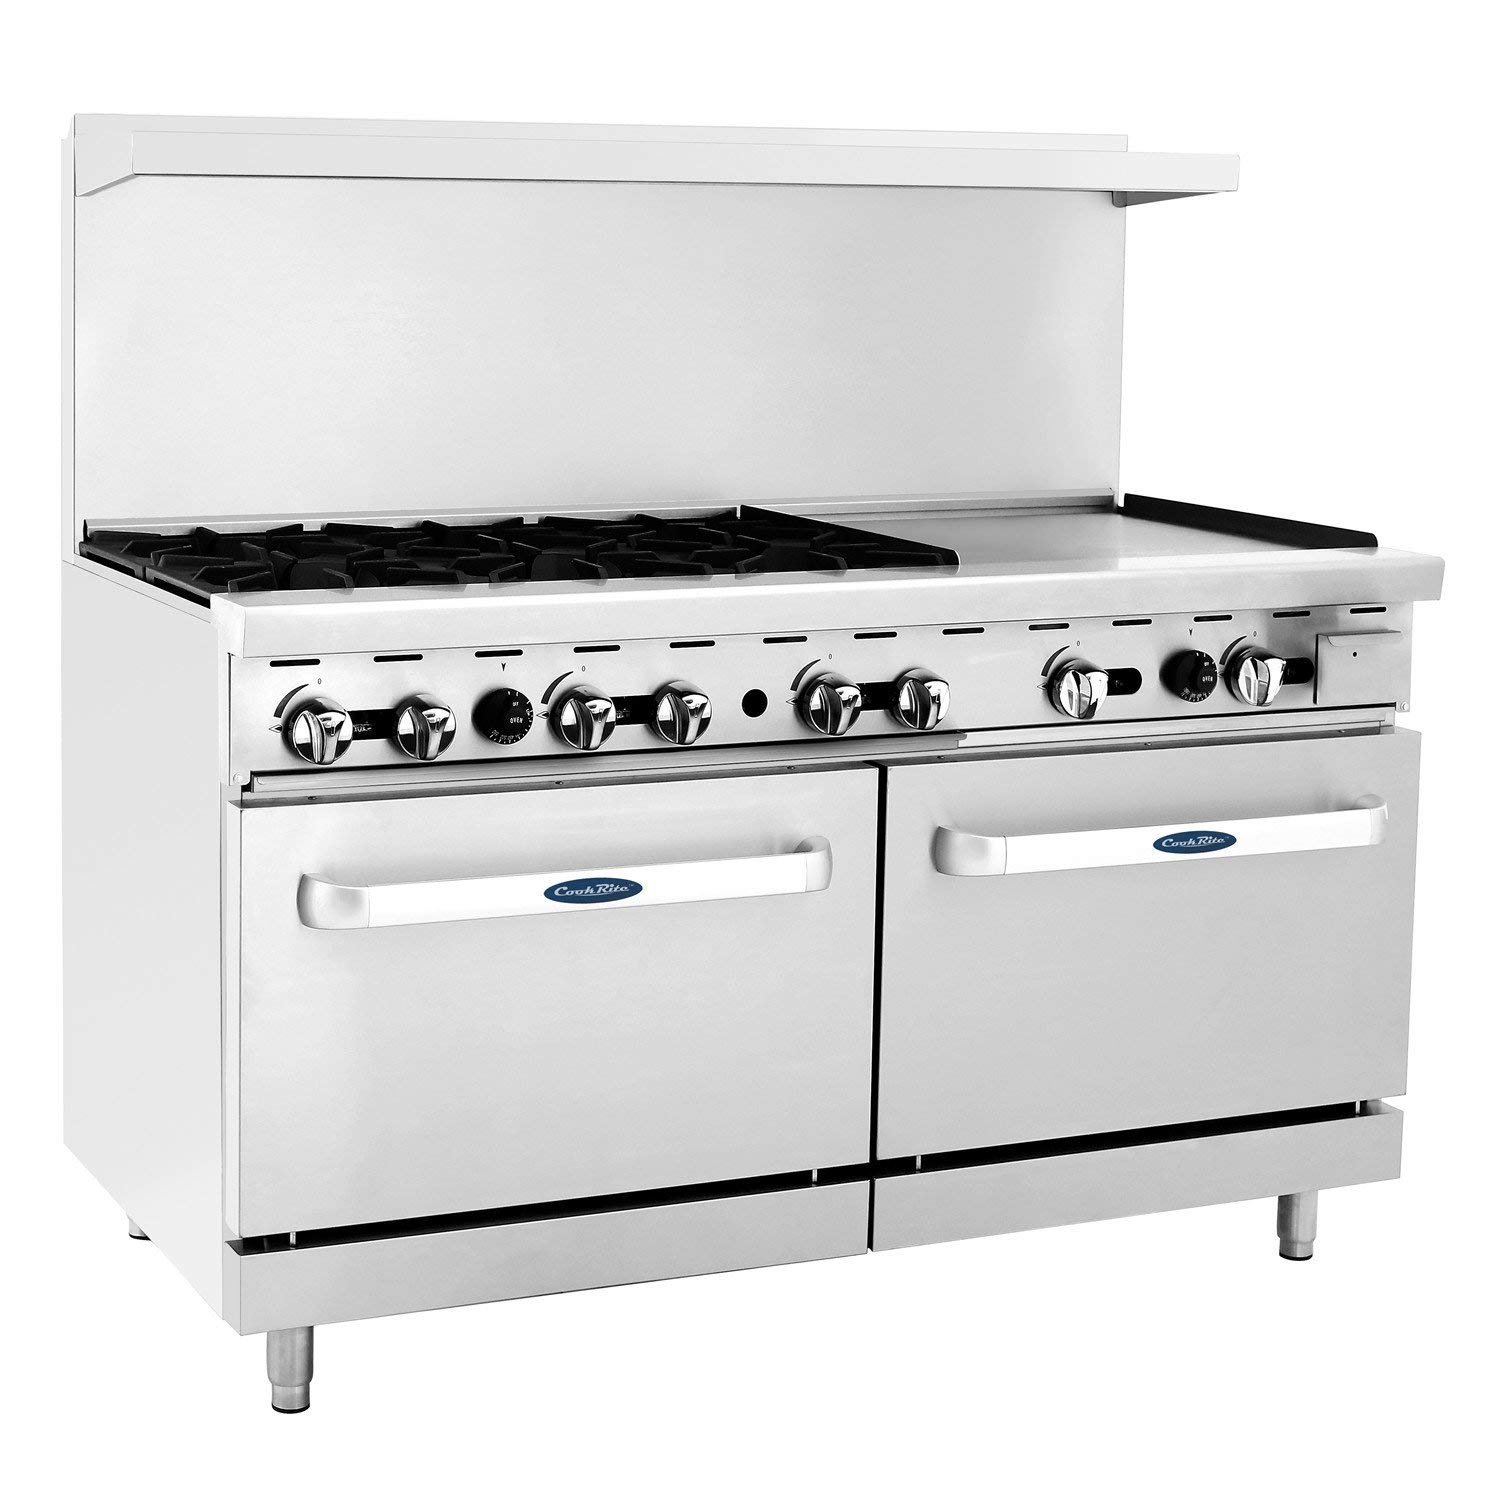 "CookRite Commercial ATO-6B24G Liquid Propane Range 6 Burner Hotplates with 24"" Manual Griddle 2 Standard Ovens 60'' Restaurant Range- 240,000 BTU"